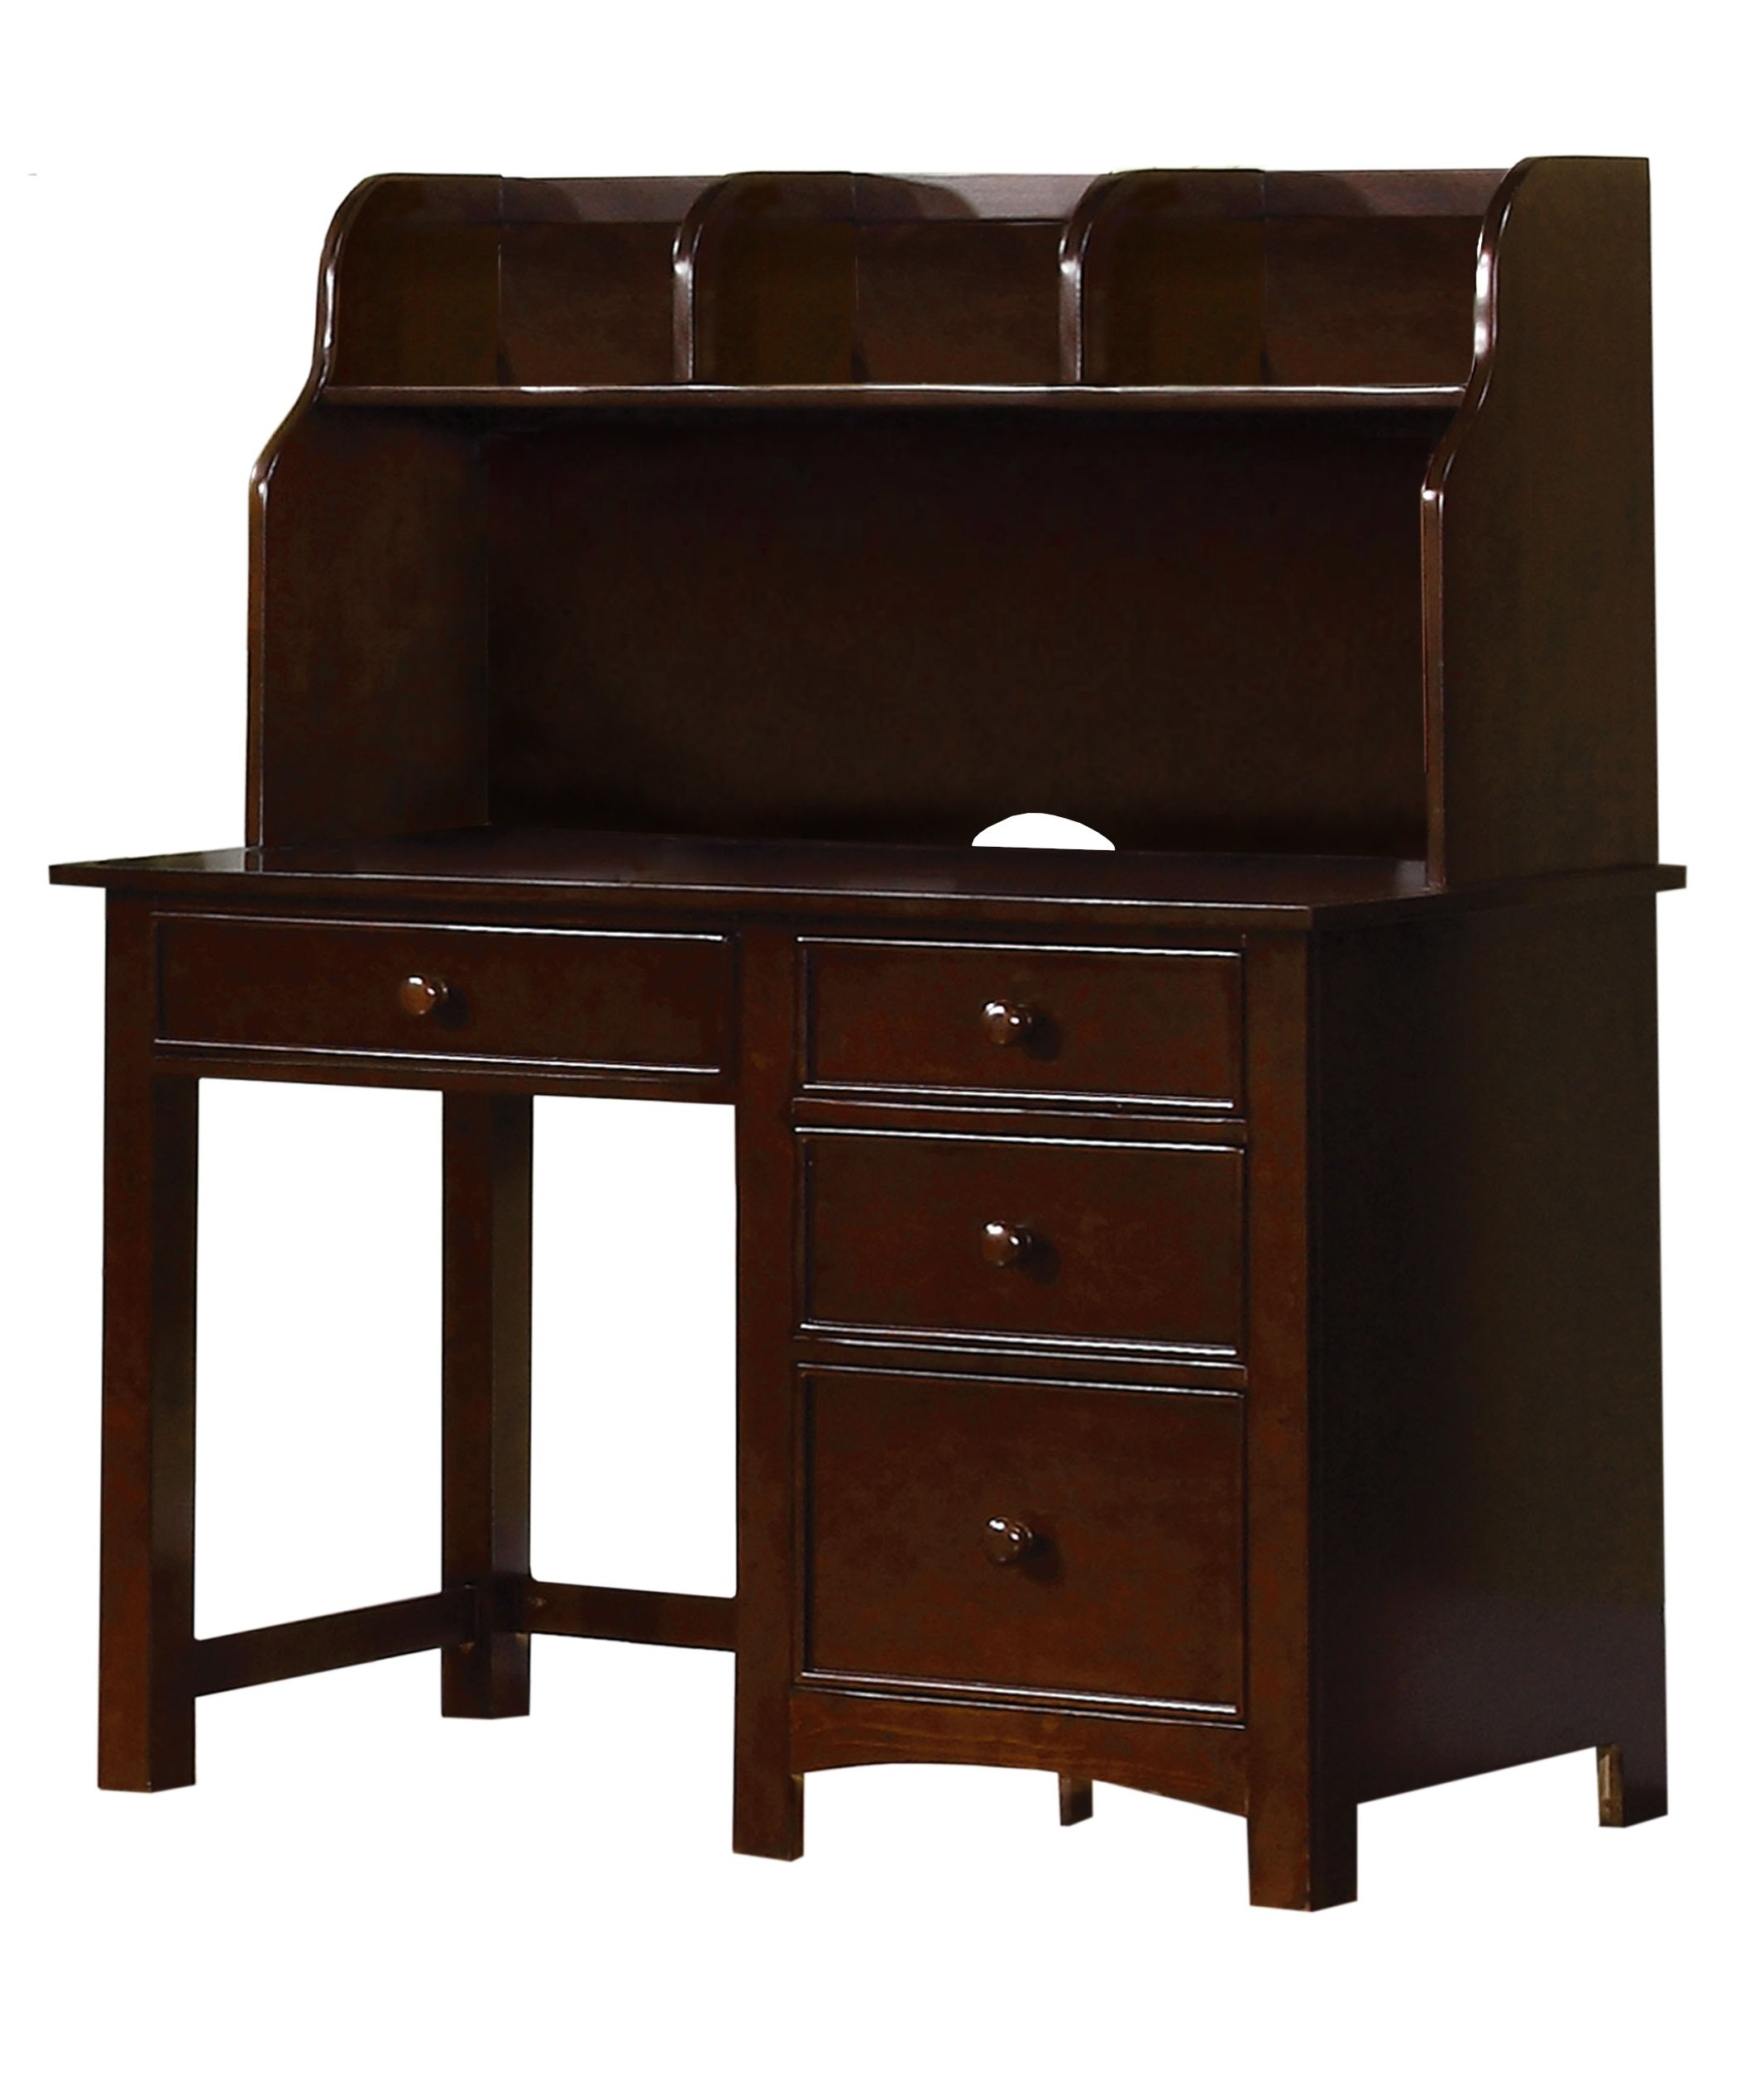 Furniture of America Alaia Dark Walnut 2-Piece Desk and Hutch Set by Furniture of America